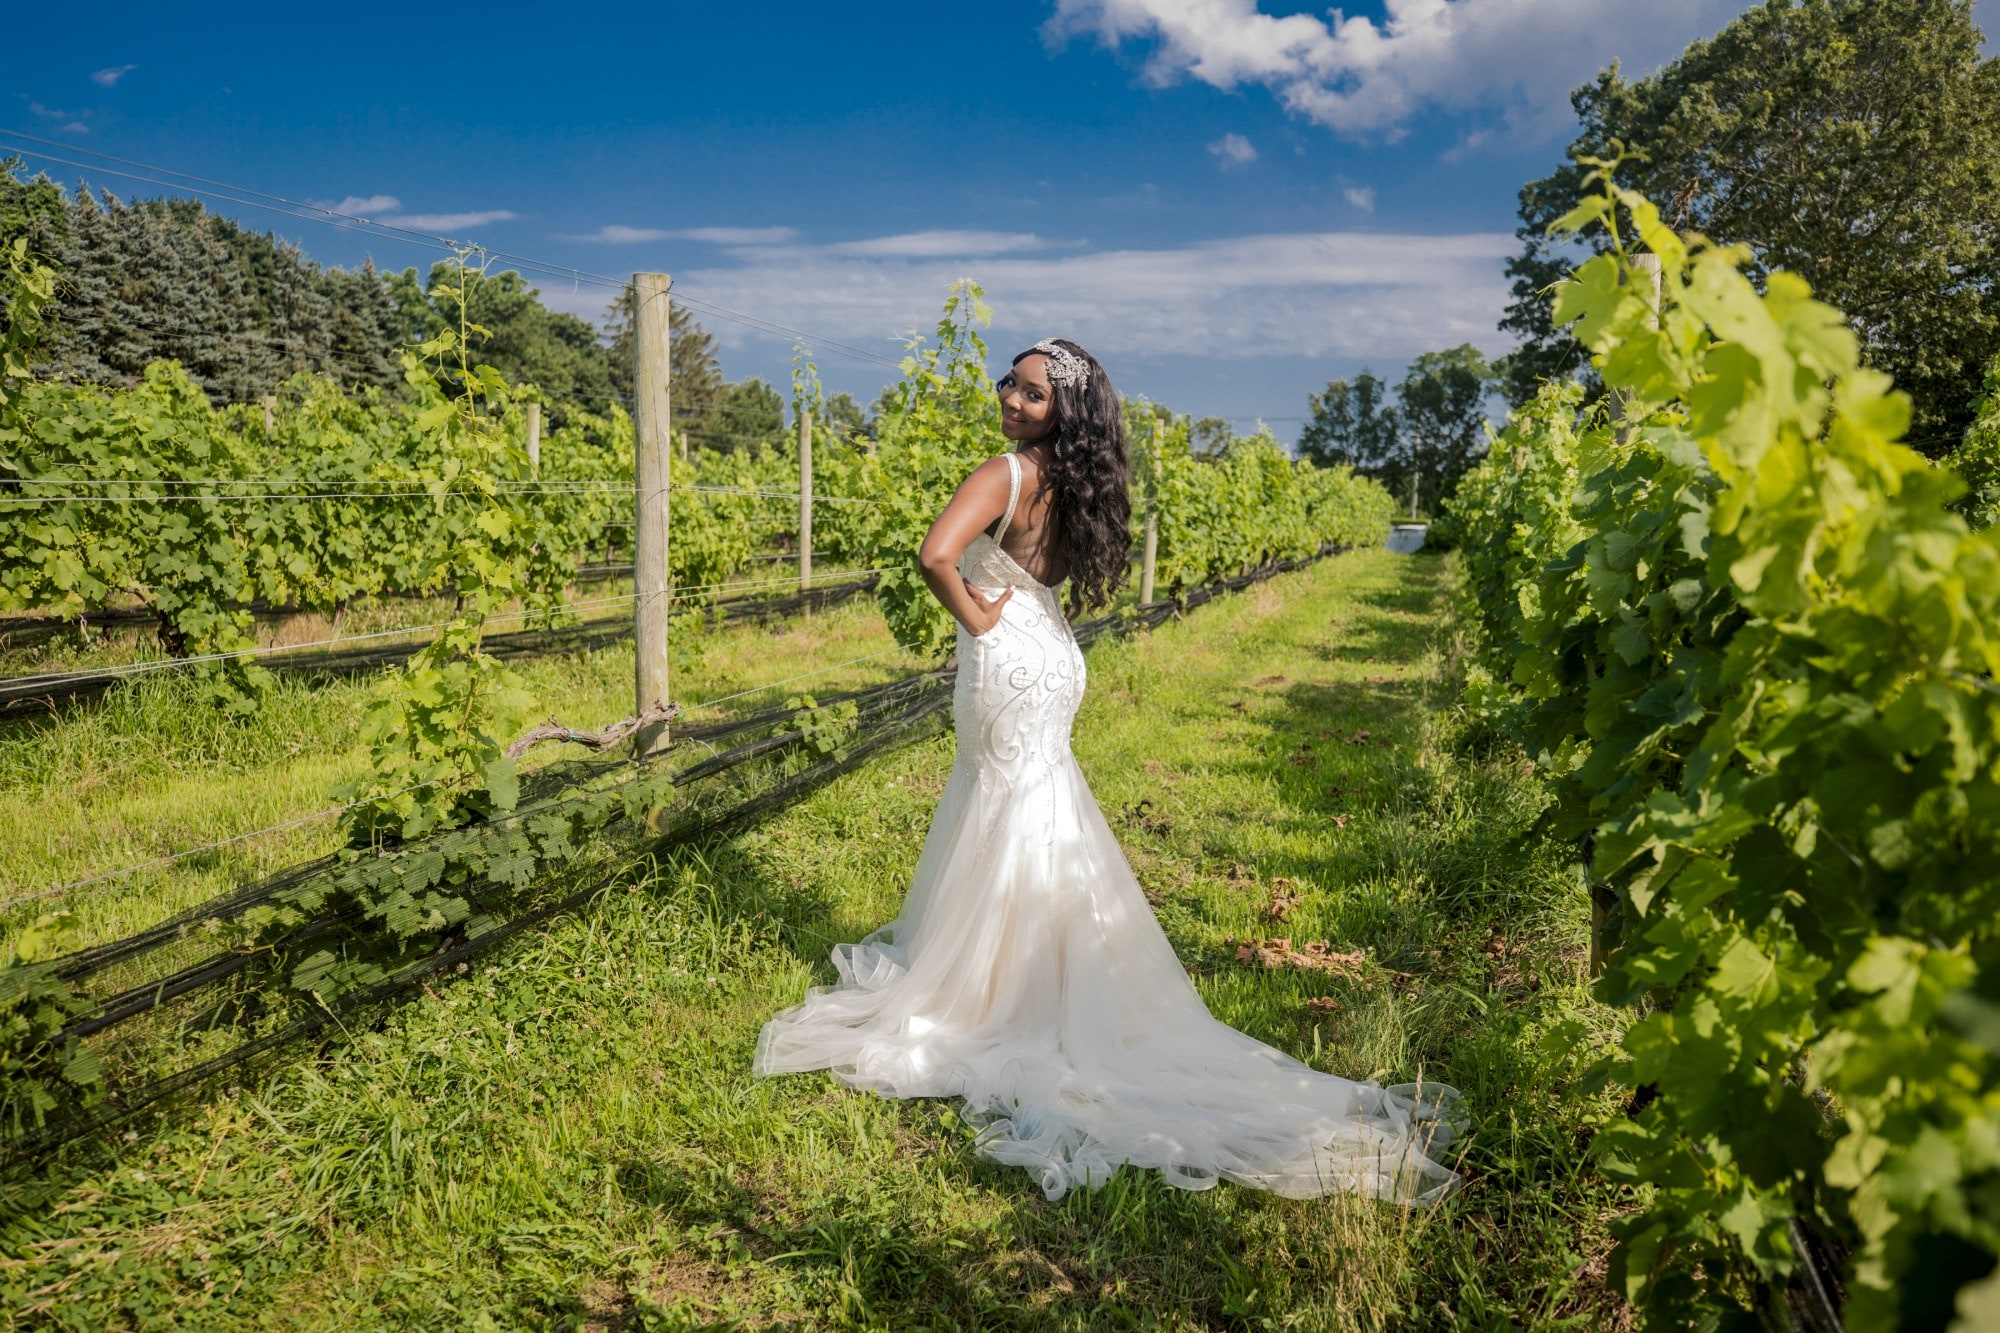 woman in white wedding gown standing on green grass field during daytime